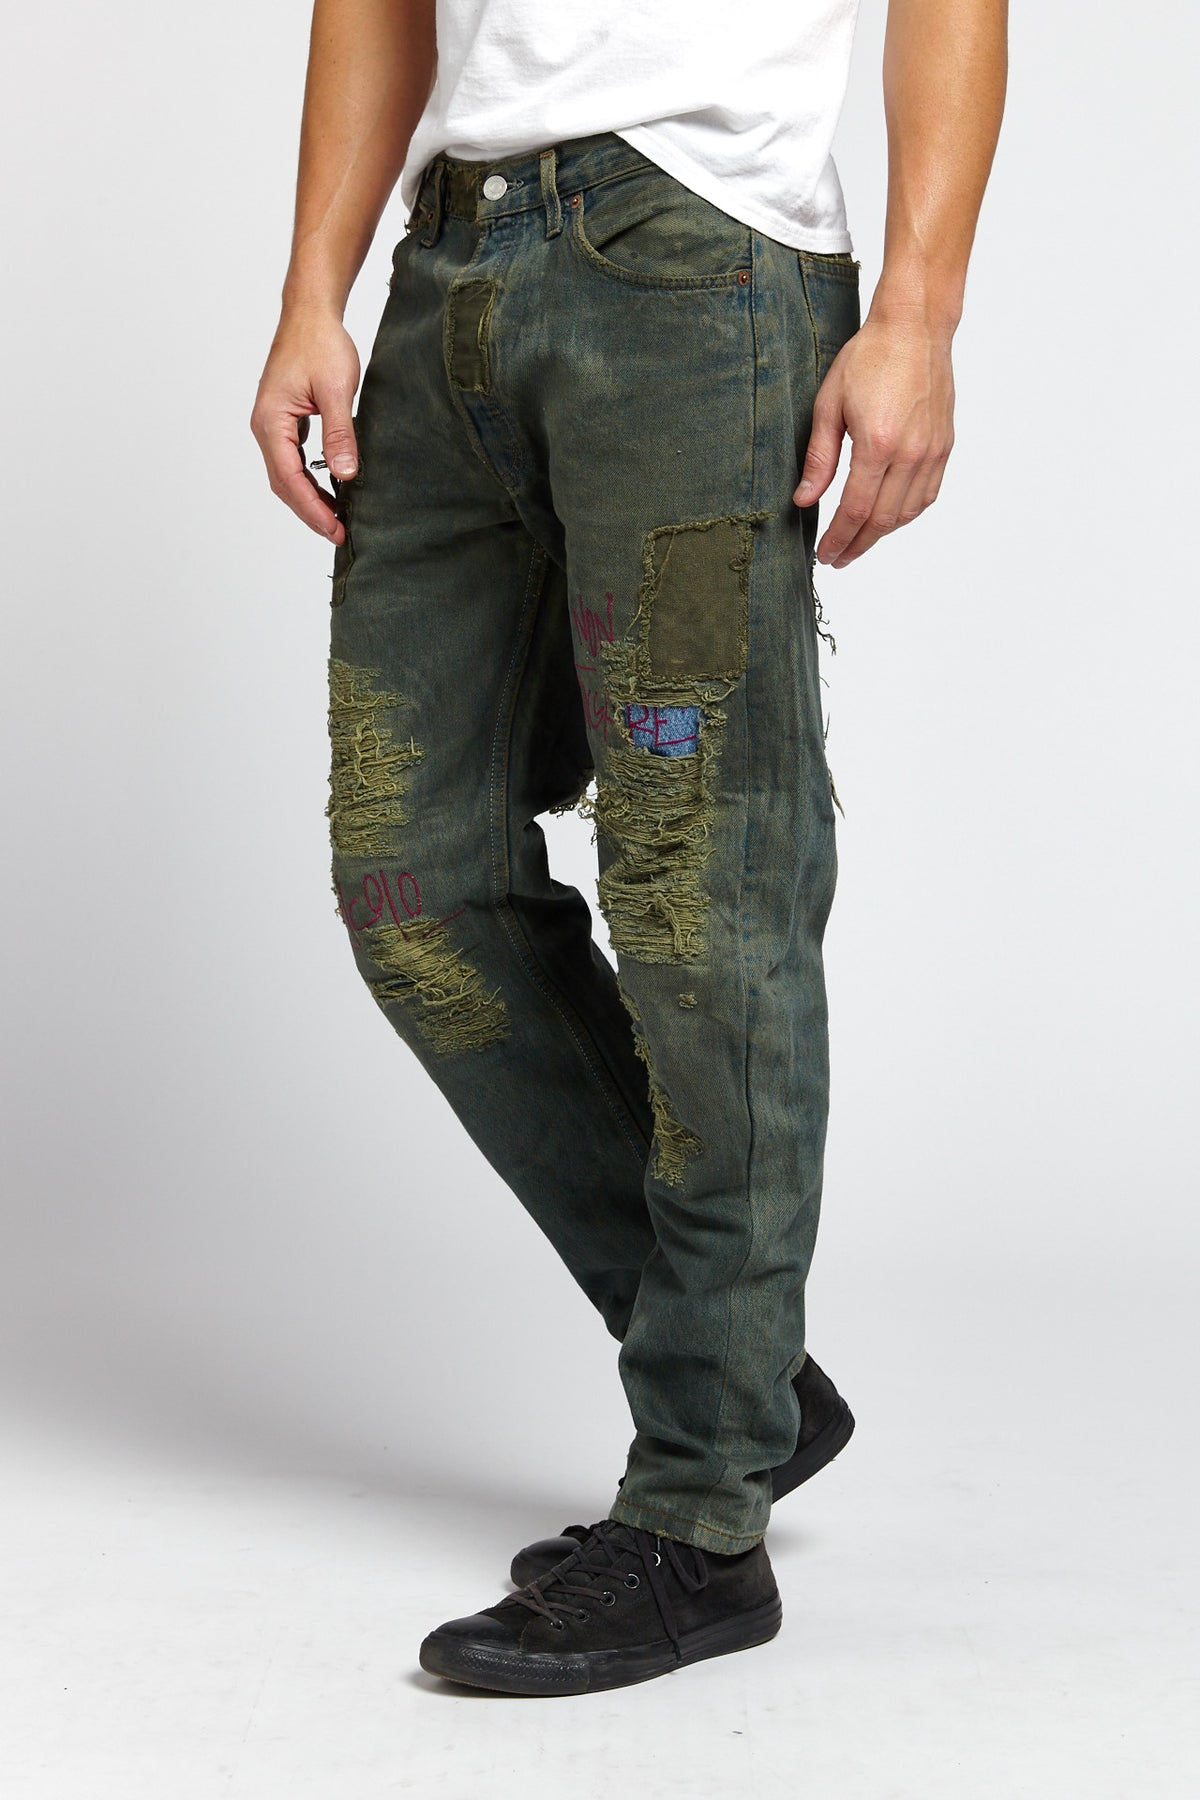 TOSSICO DISTRESSED COTTON BLUE GREEN 33 W JEANS-BOTTOMS-Mundane Official-33-BLUE/GREEN-Mundane Official